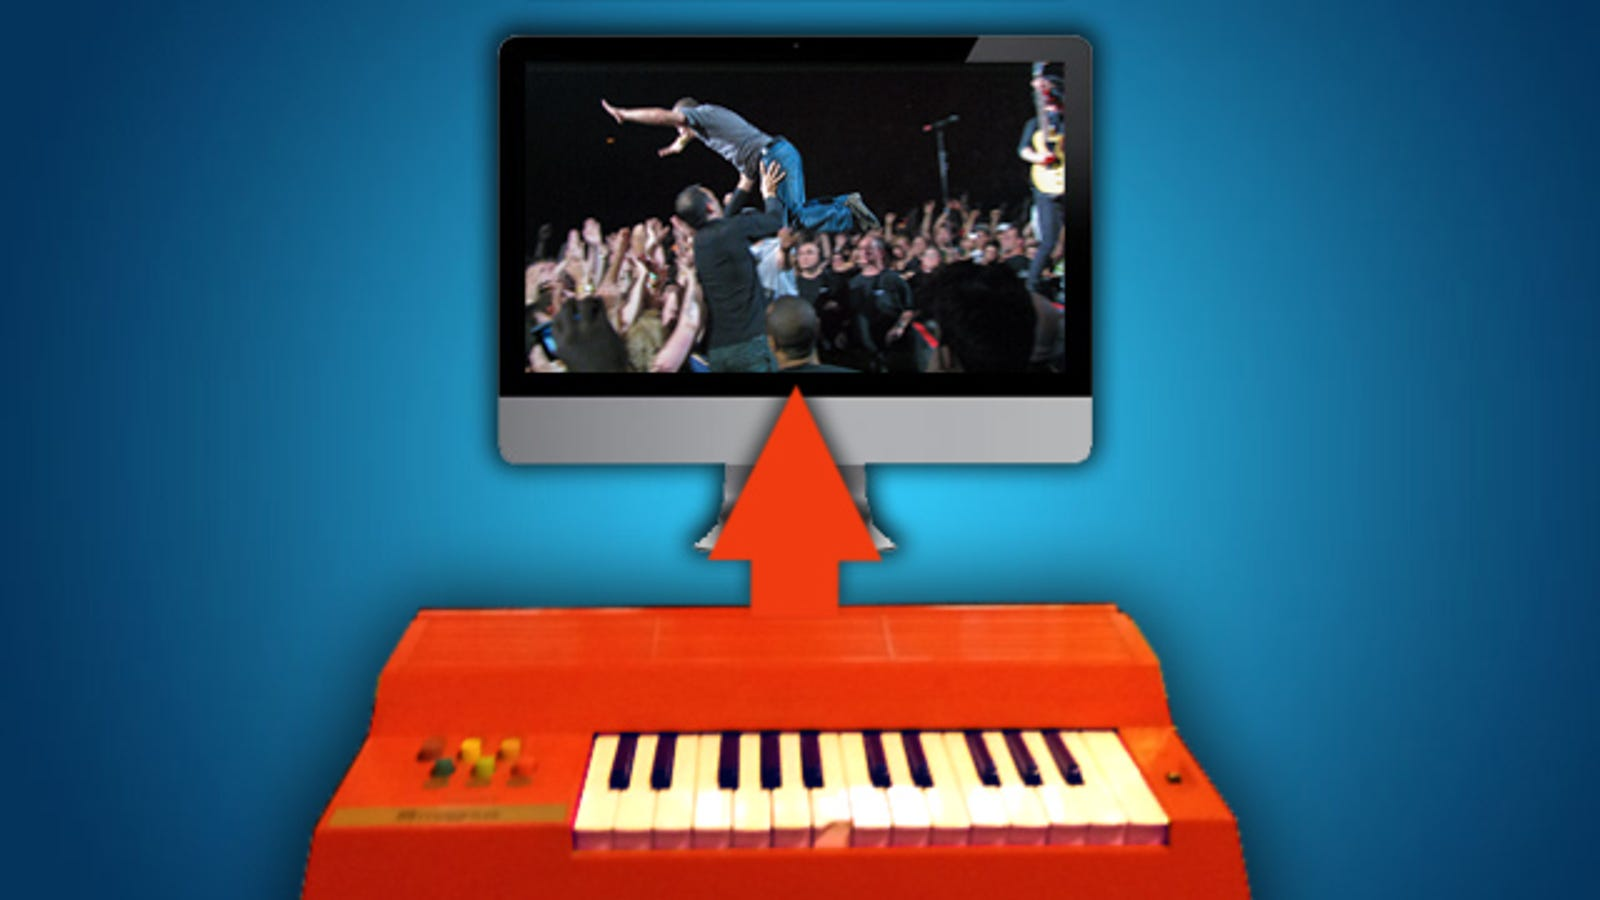 How Can I Release My Music Online So Music-Lovers Can Easily